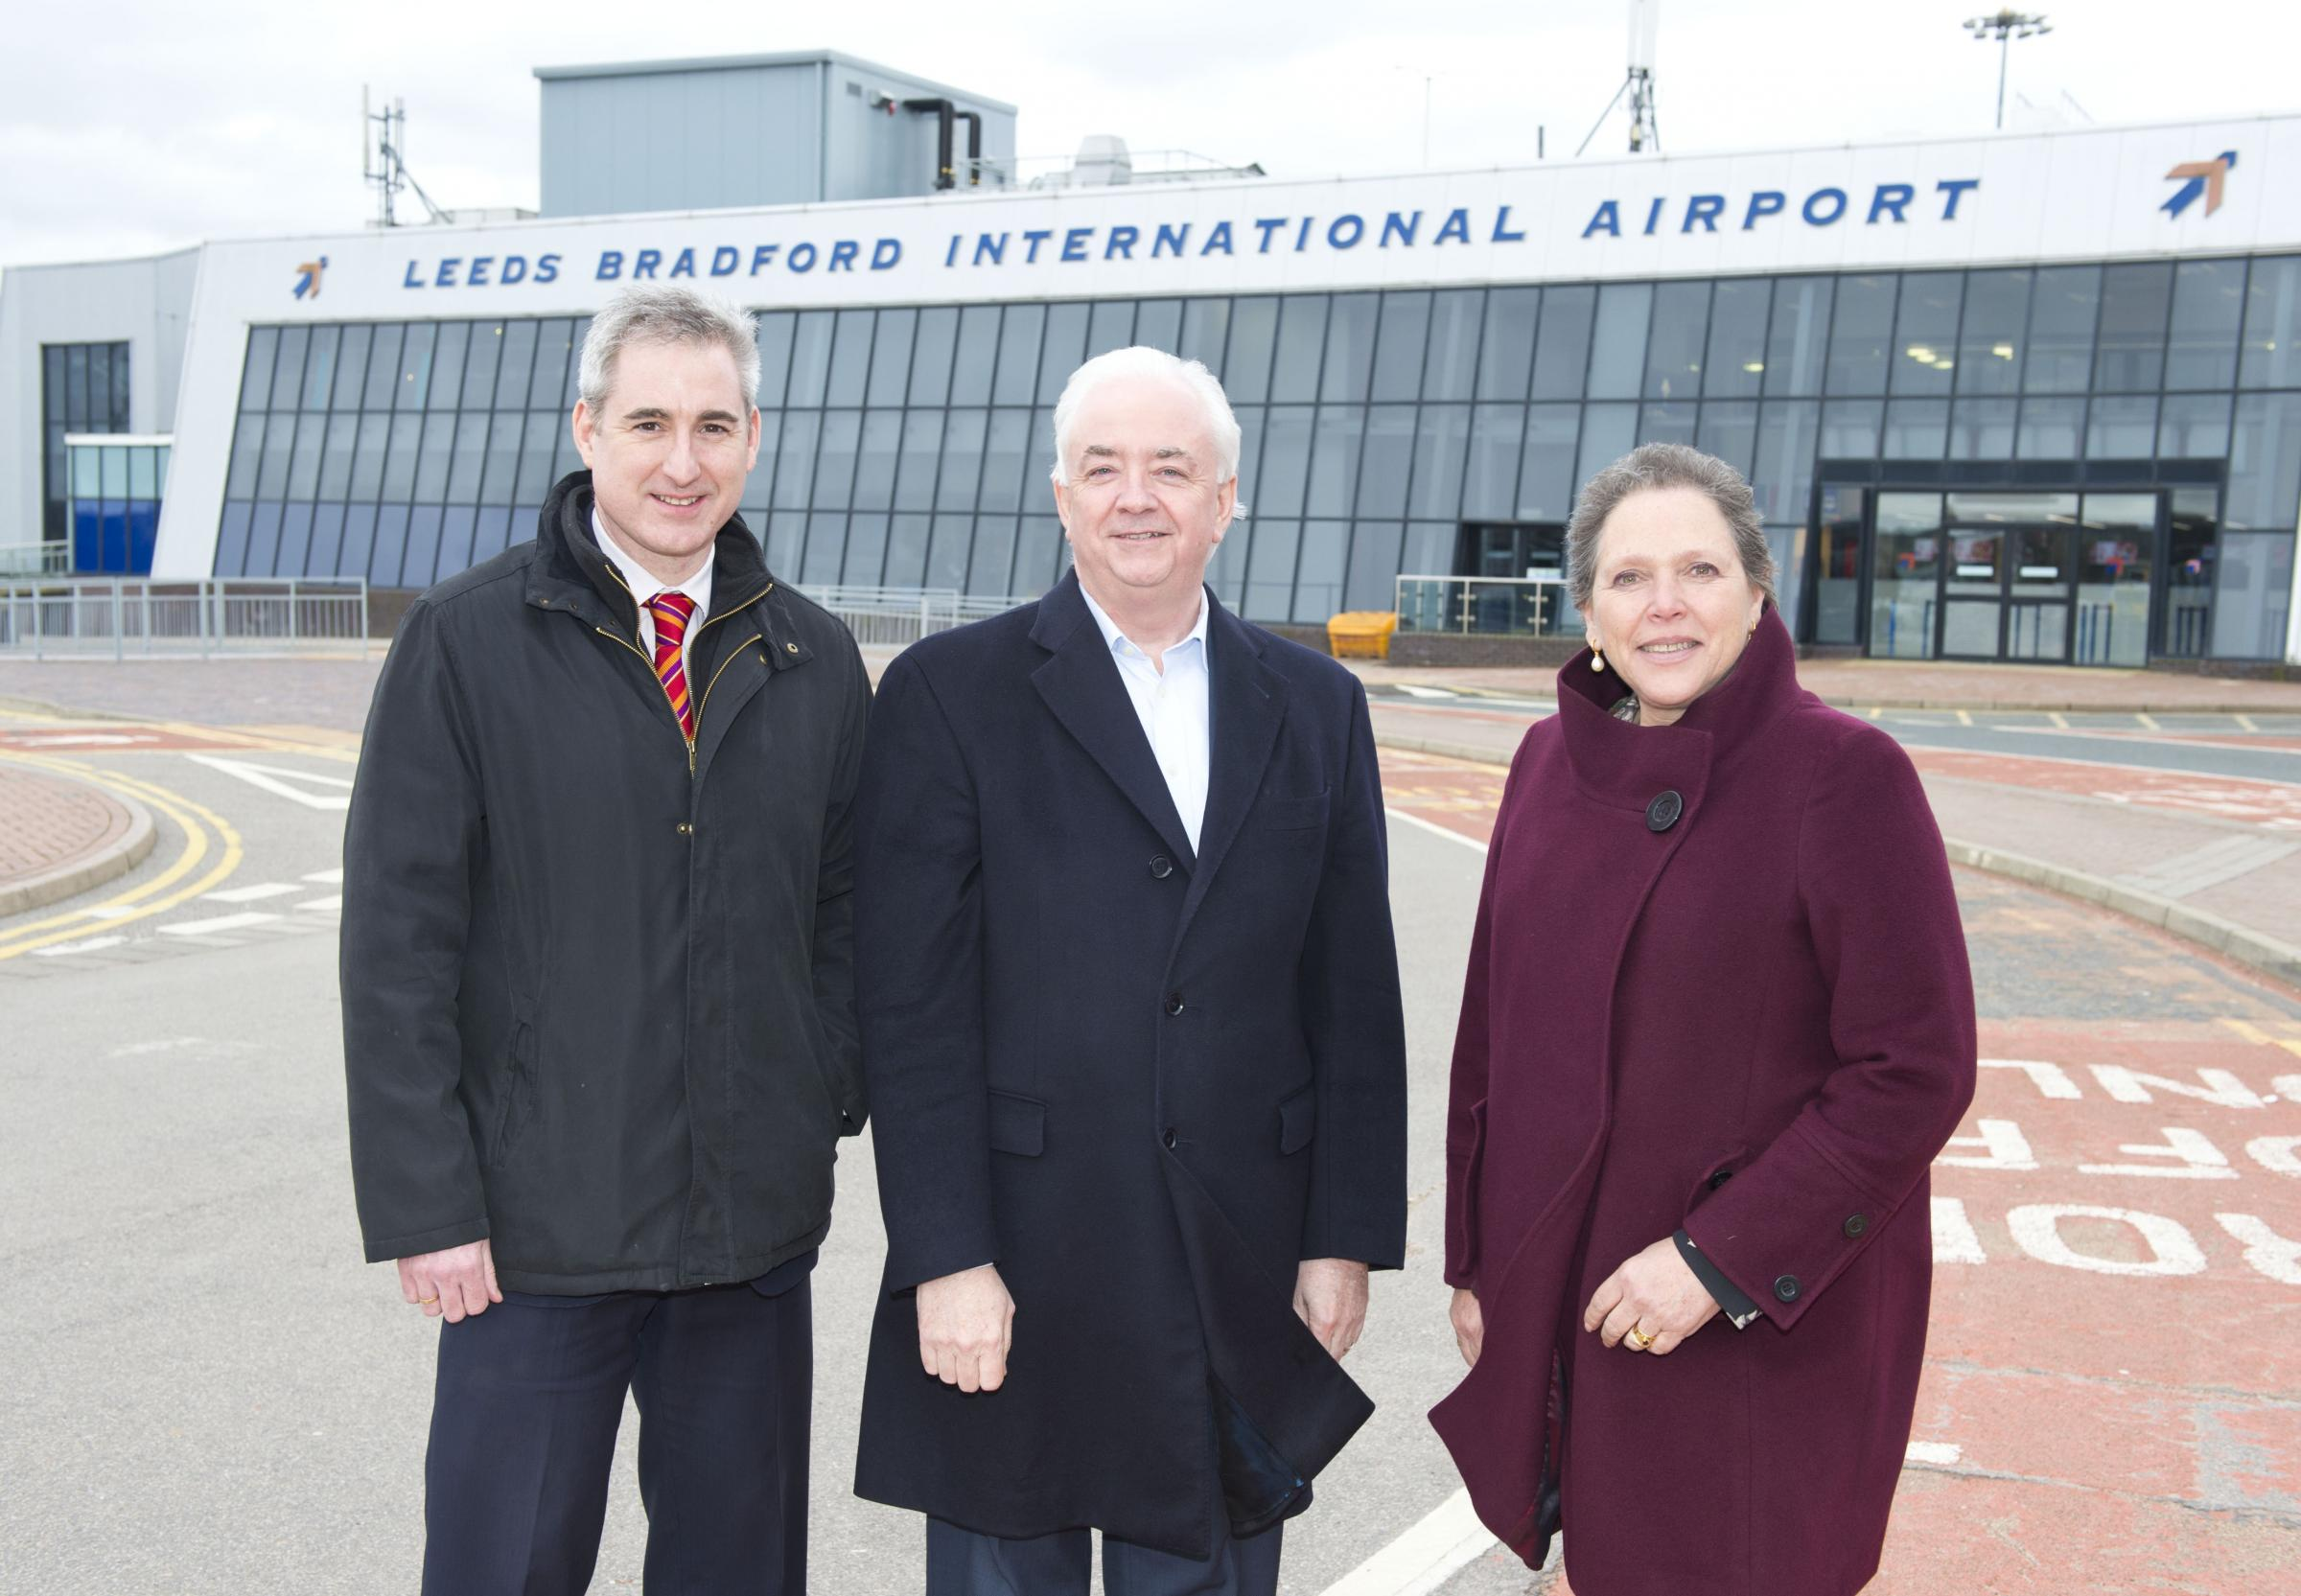 MP Greg Mulholland, John Parkin, and Baroness Kramer at Leeds Bradford Airport